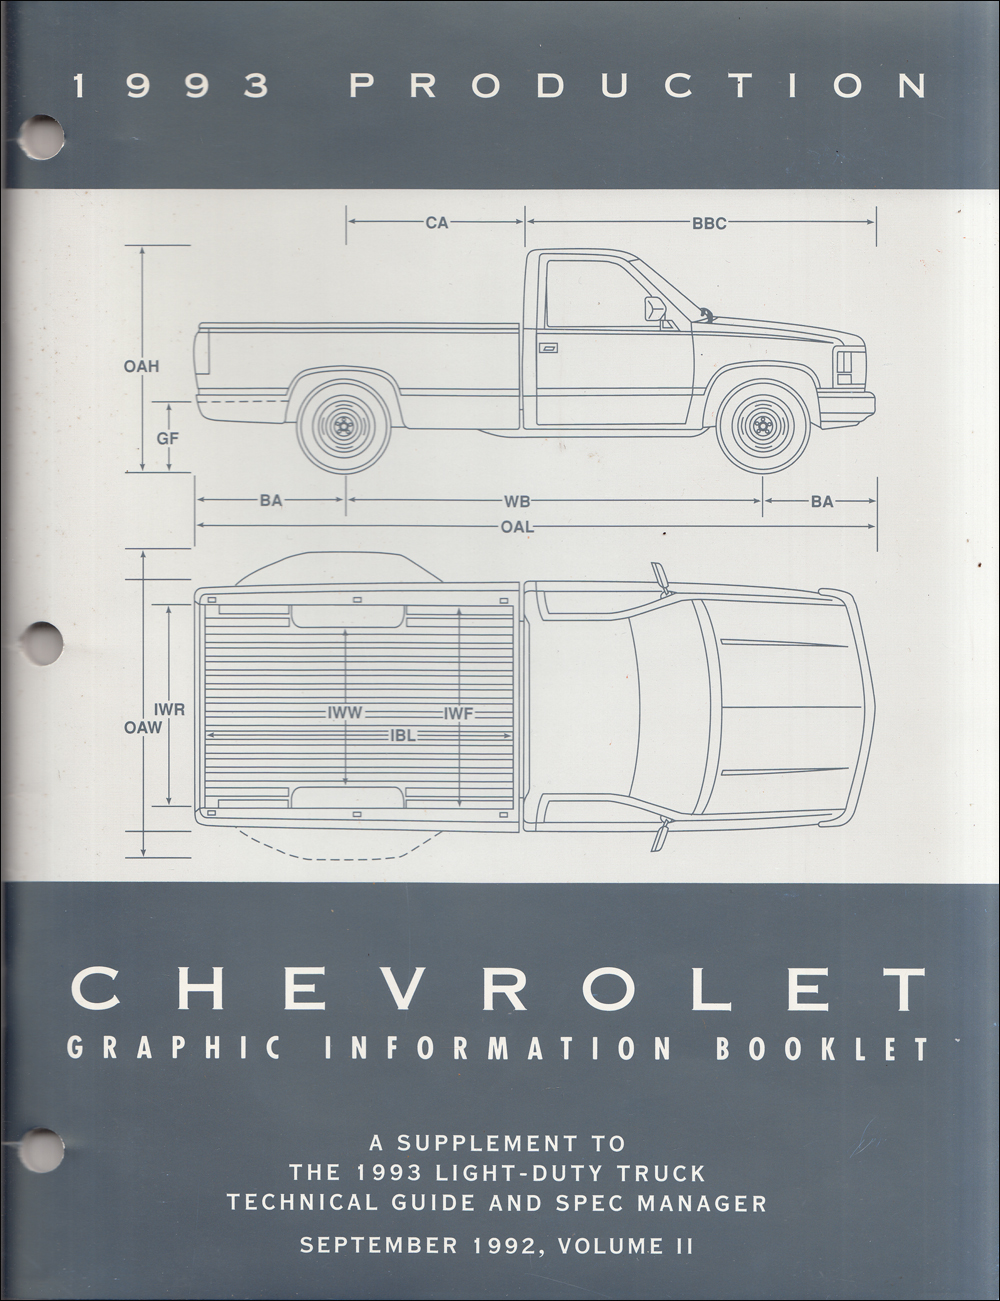 1993 Chevrolet Truck Graphic Booklet Original Dealer Album Supplement